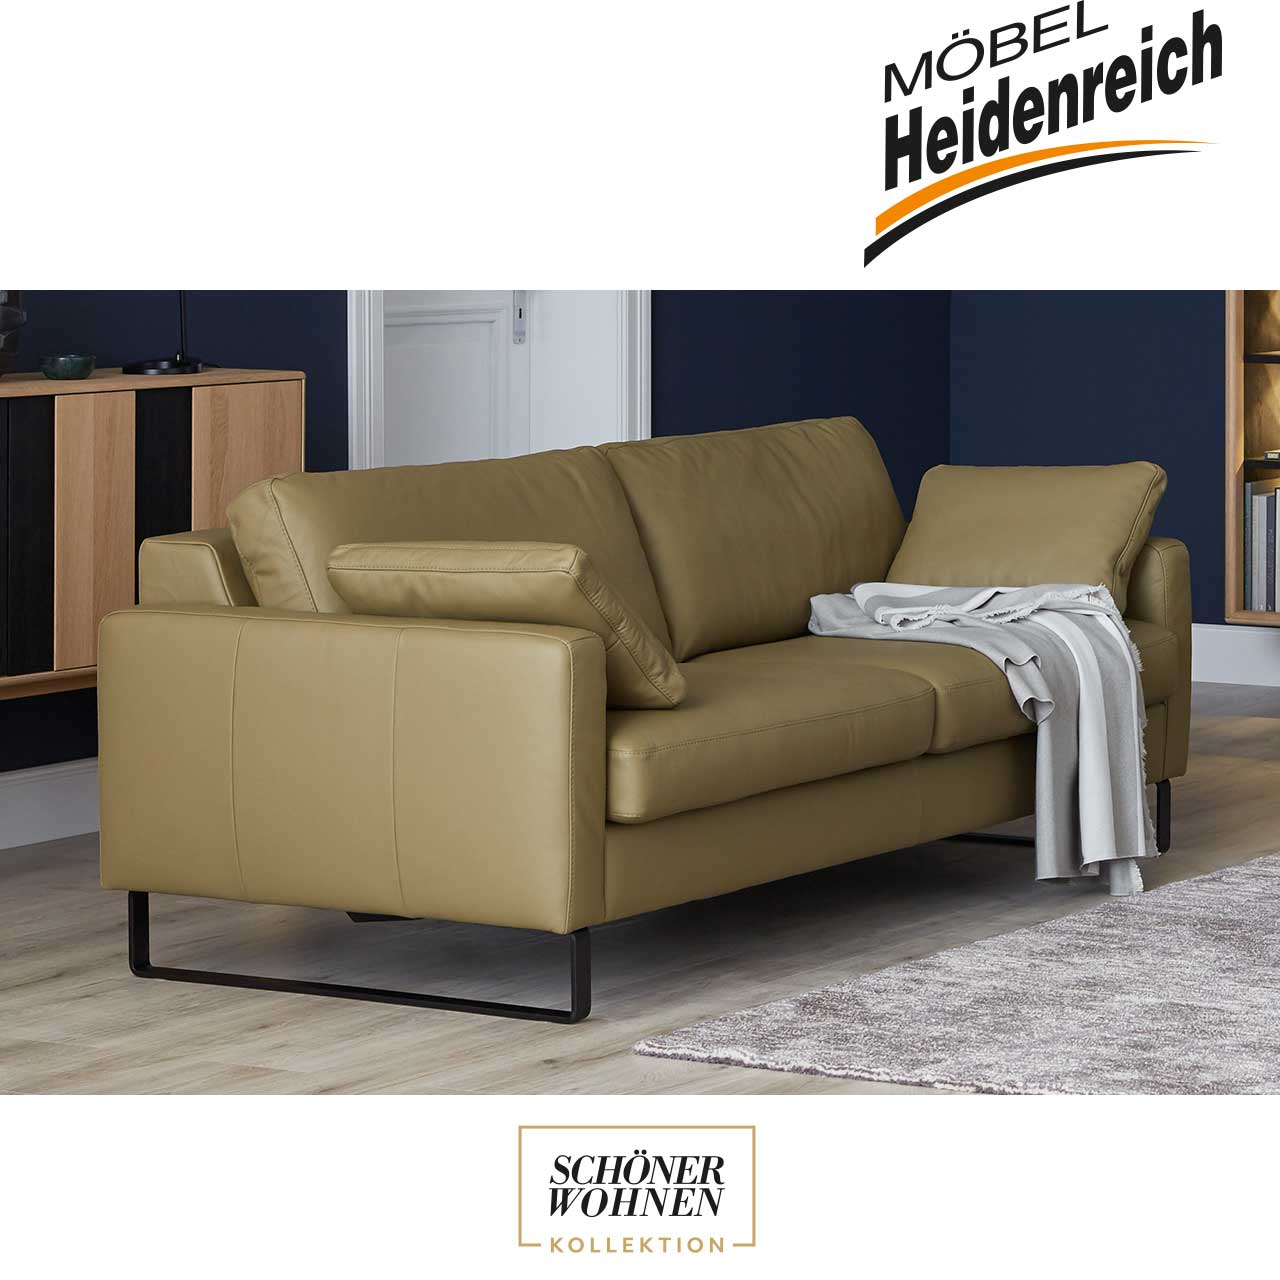 sch ner wohnen sofa timeless m bel heidenreich. Black Bedroom Furniture Sets. Home Design Ideas